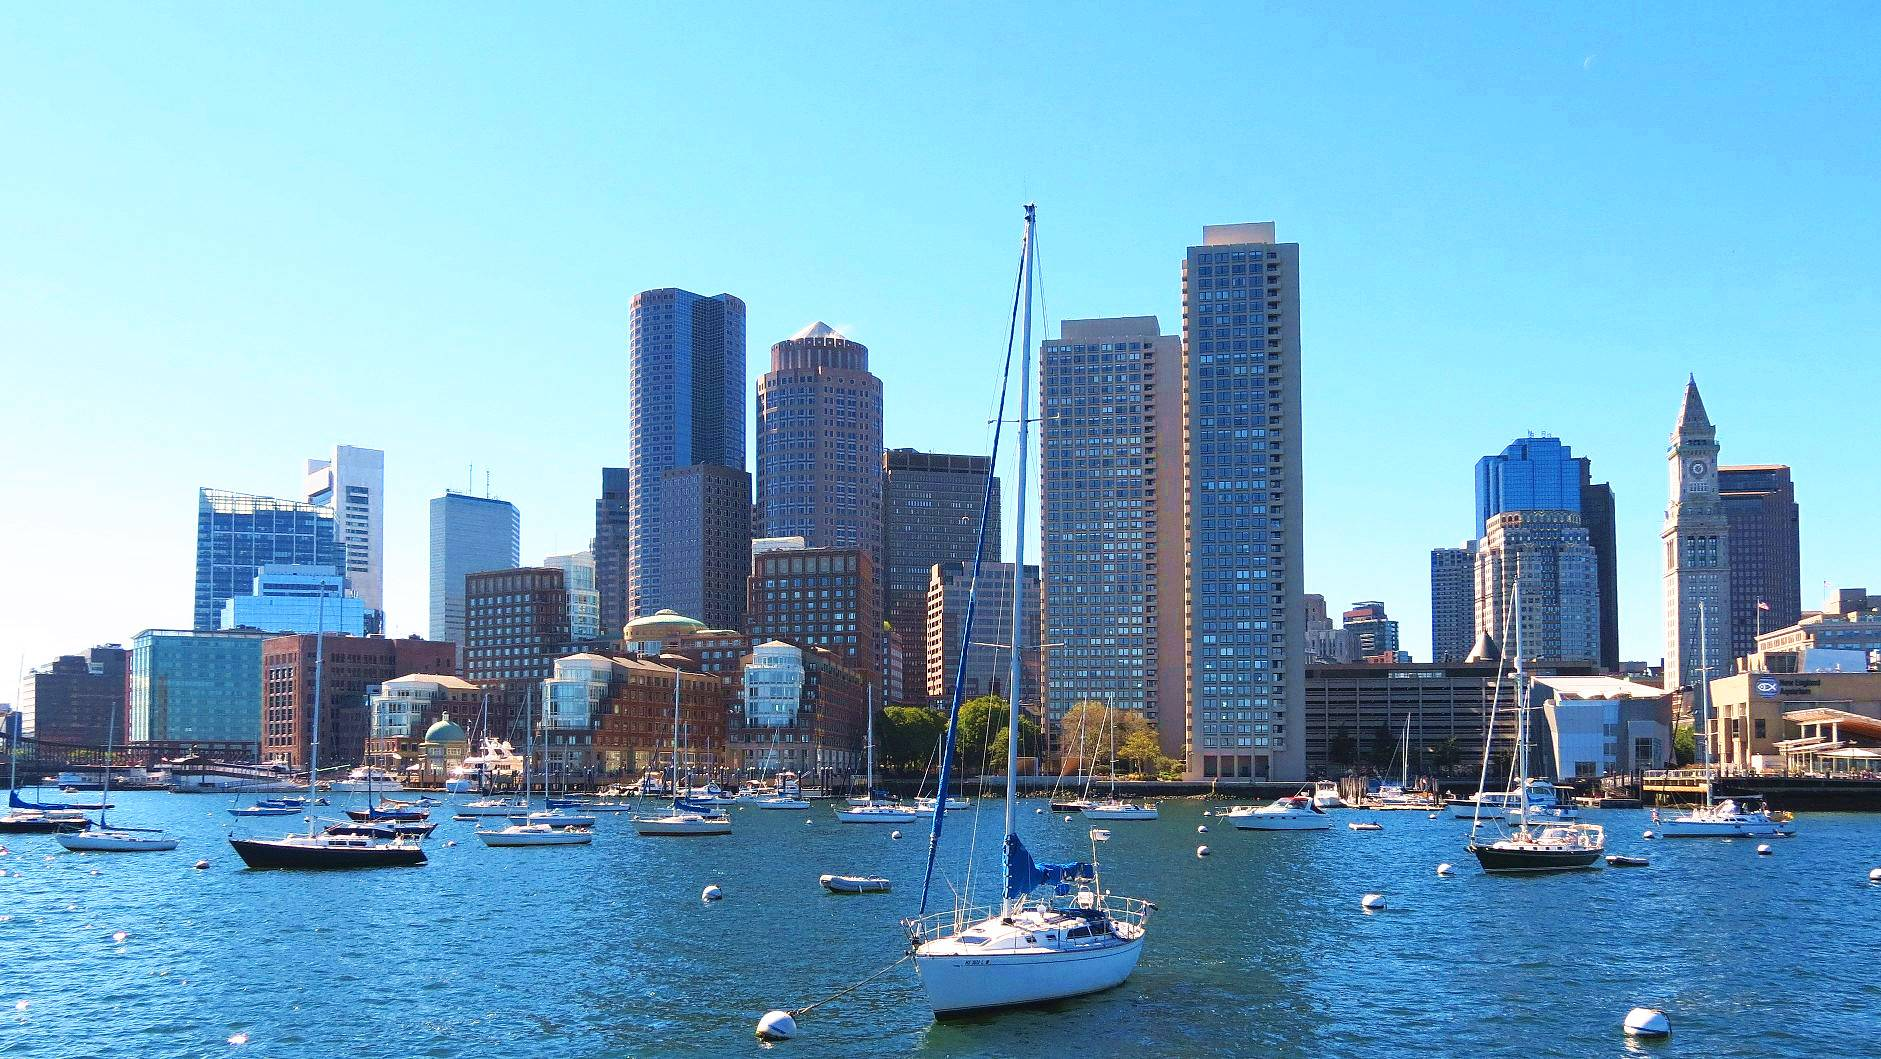 2-Day Boston and Rhode Island Tour from New York - Tours4Fun